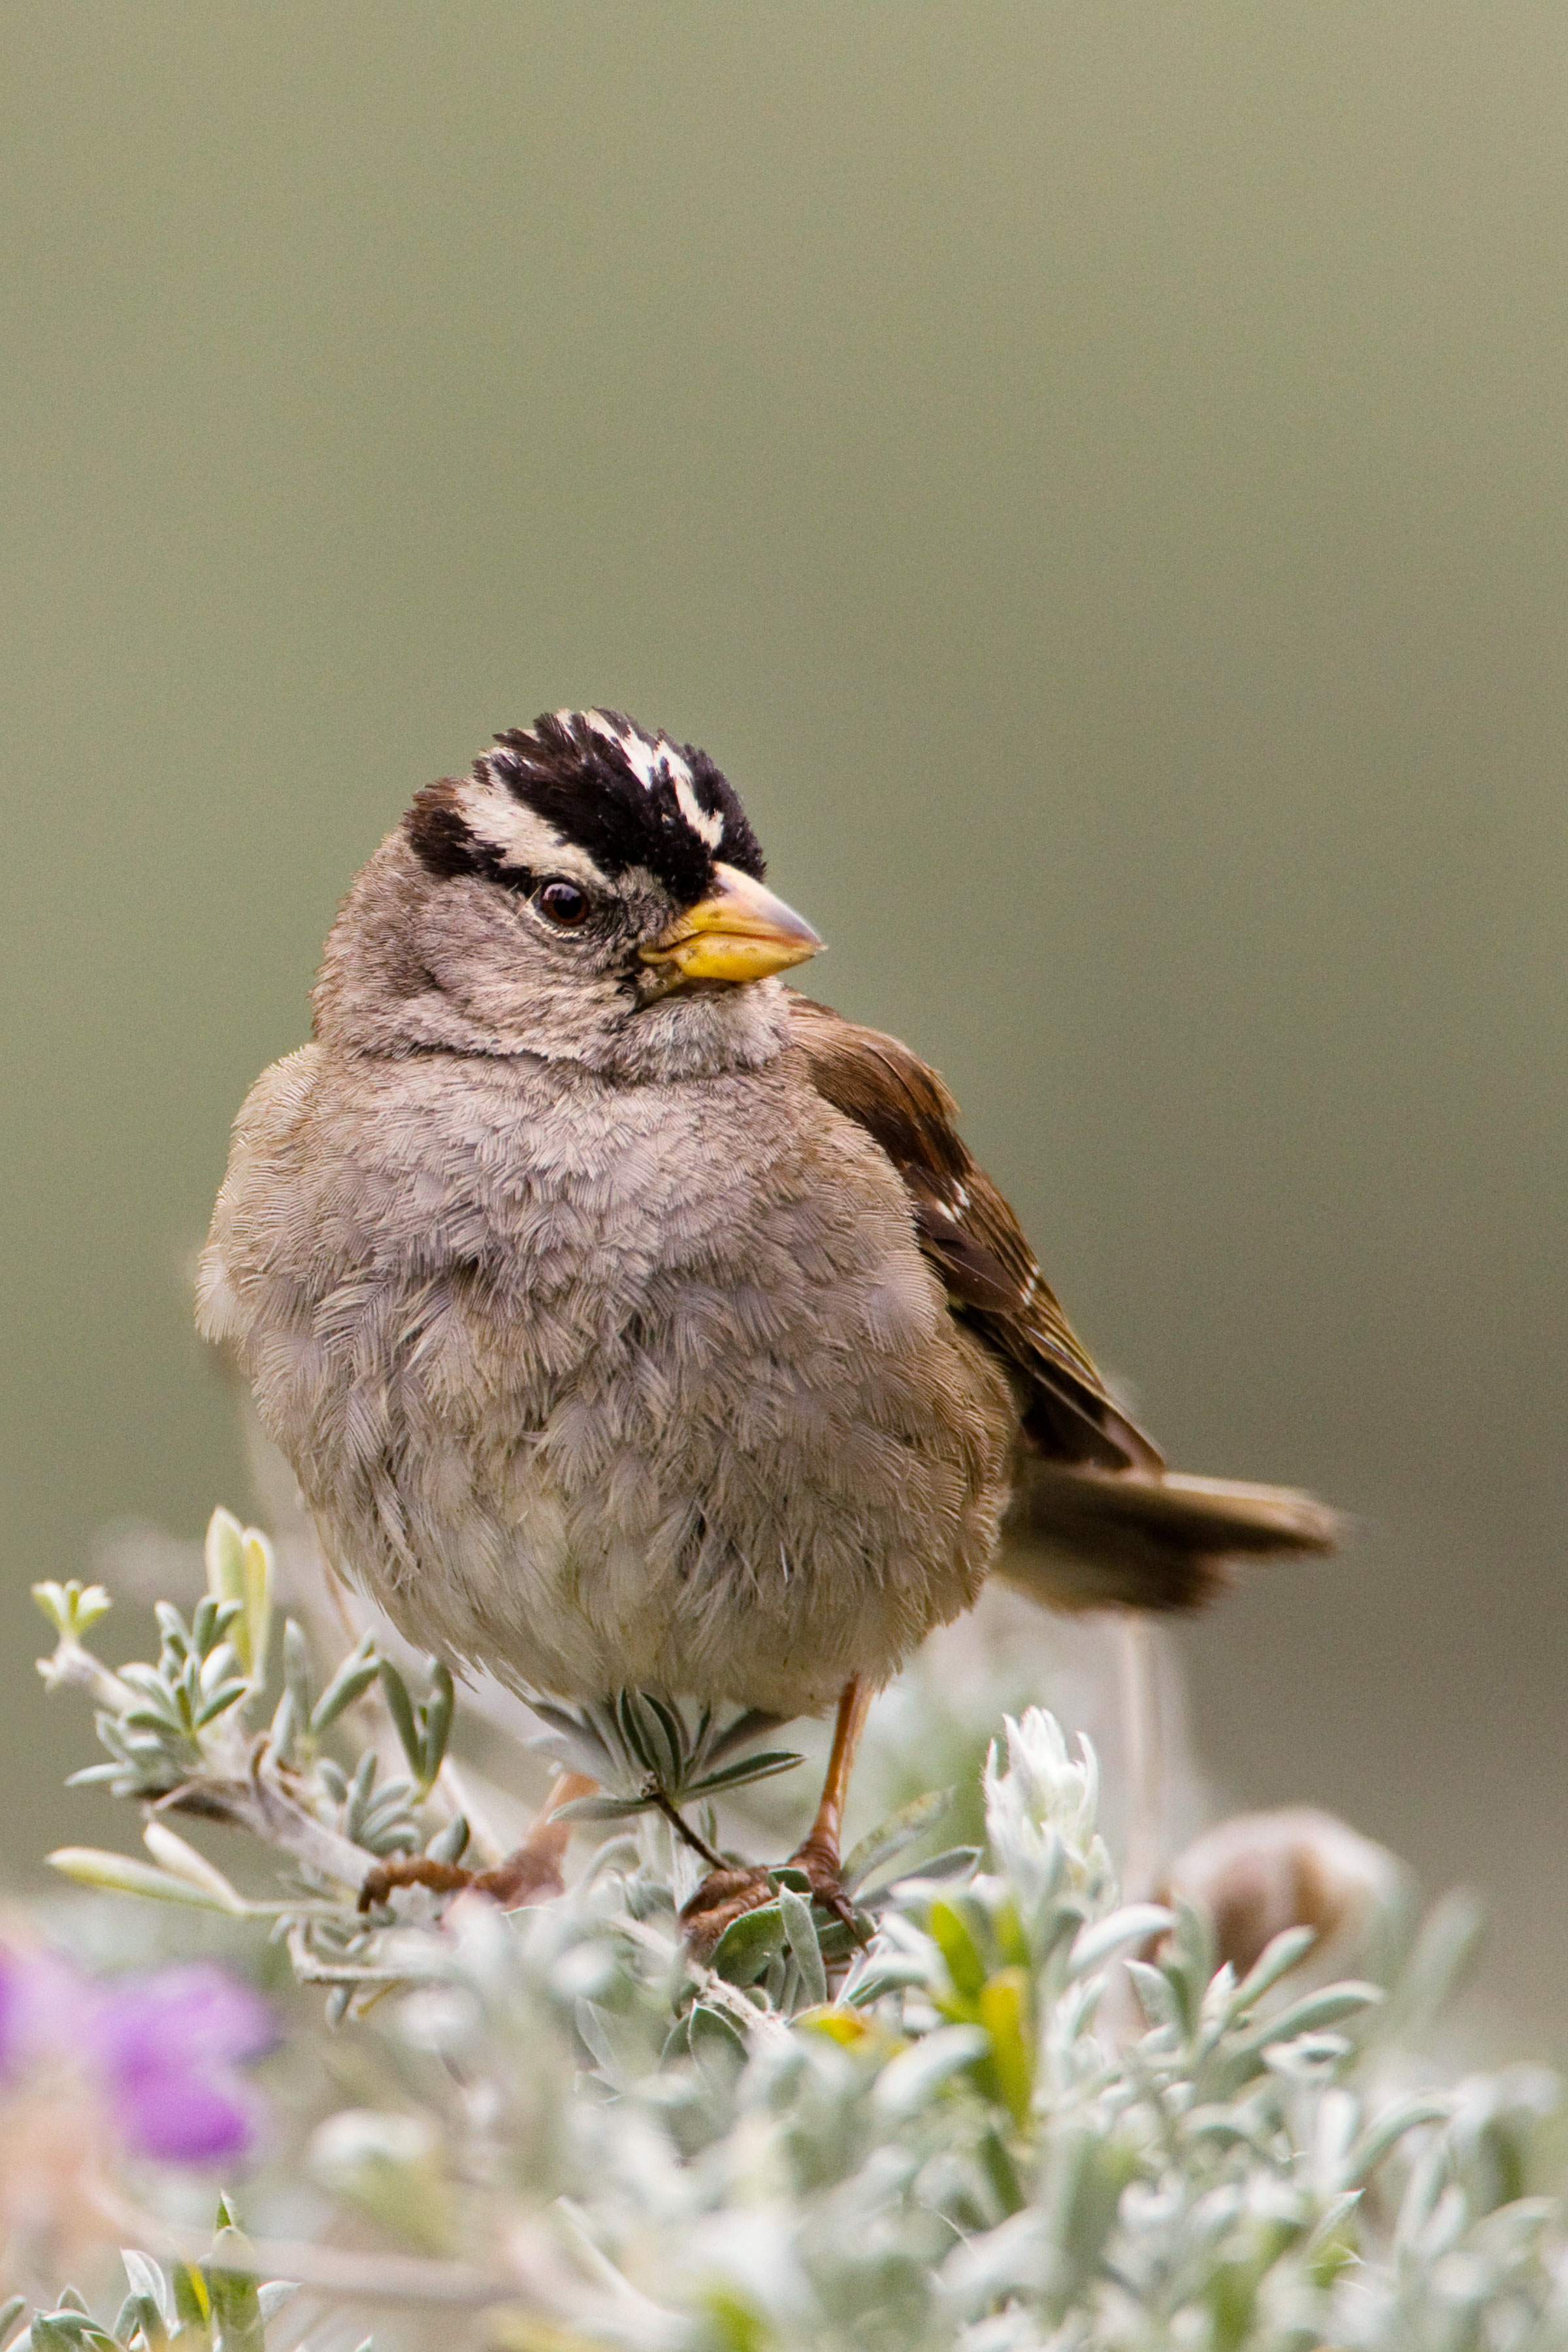 A White-crowned Sparrow from Presidio. Sebastian Kennerknecht/Minden Pictures